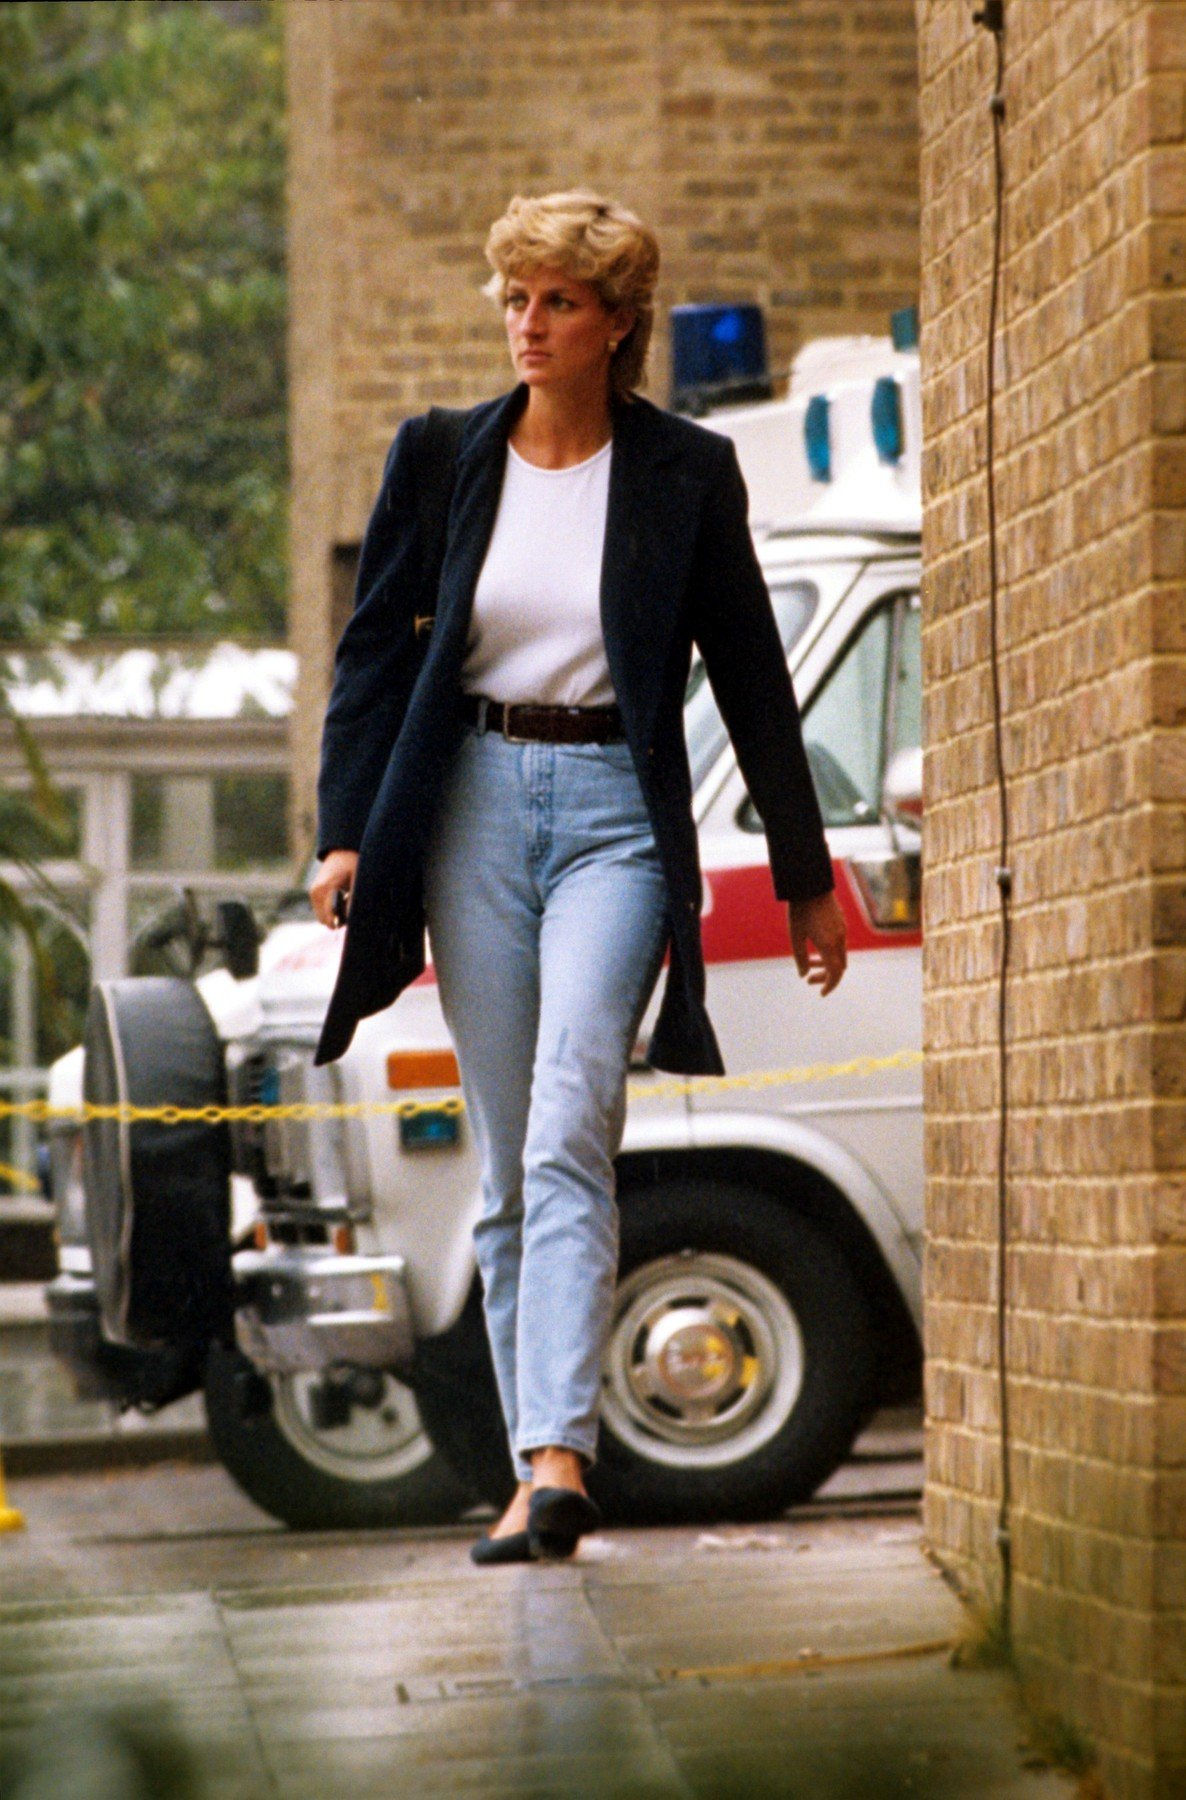 Princess Diana Princess Diana visiting Royal Brompton Hospital, Chelsea, London, Britain - Sep 1995, Image: 224824166, License: Rights-managed, Restrictions: , Model Release: no, Credit line: Profimedia, TEMP Rex Features